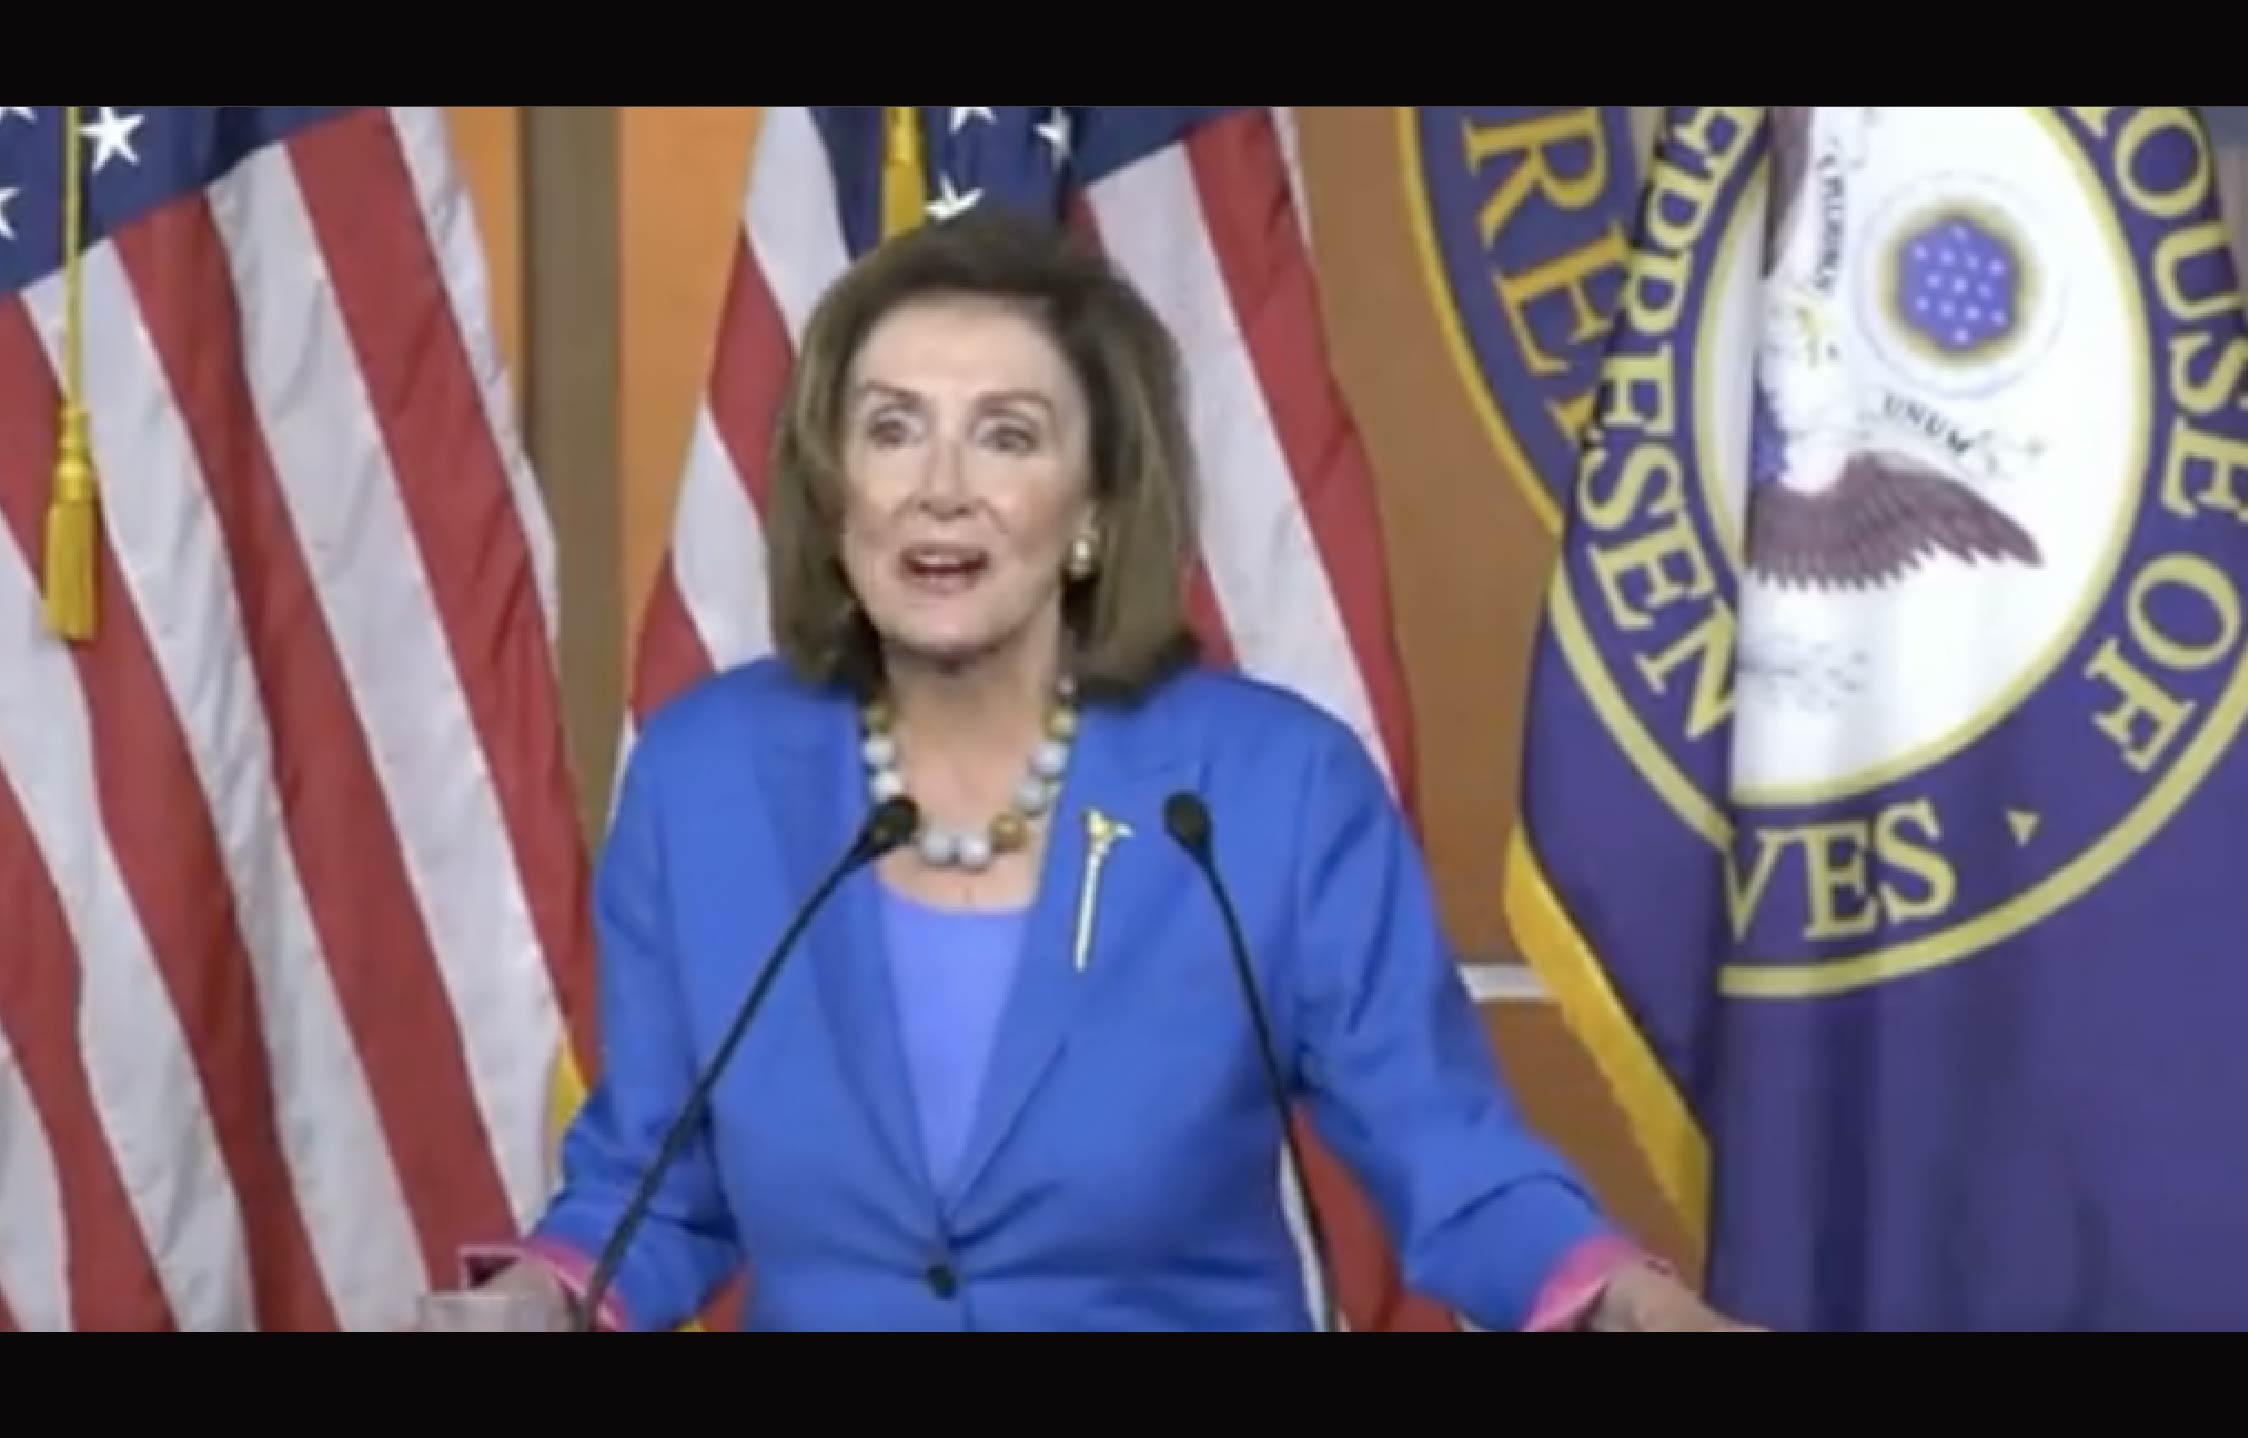 """[VIDEO] Pelosi Behaves So Alarmingly During Presser That People Actually Ask """"Is She Drunk?"""""""